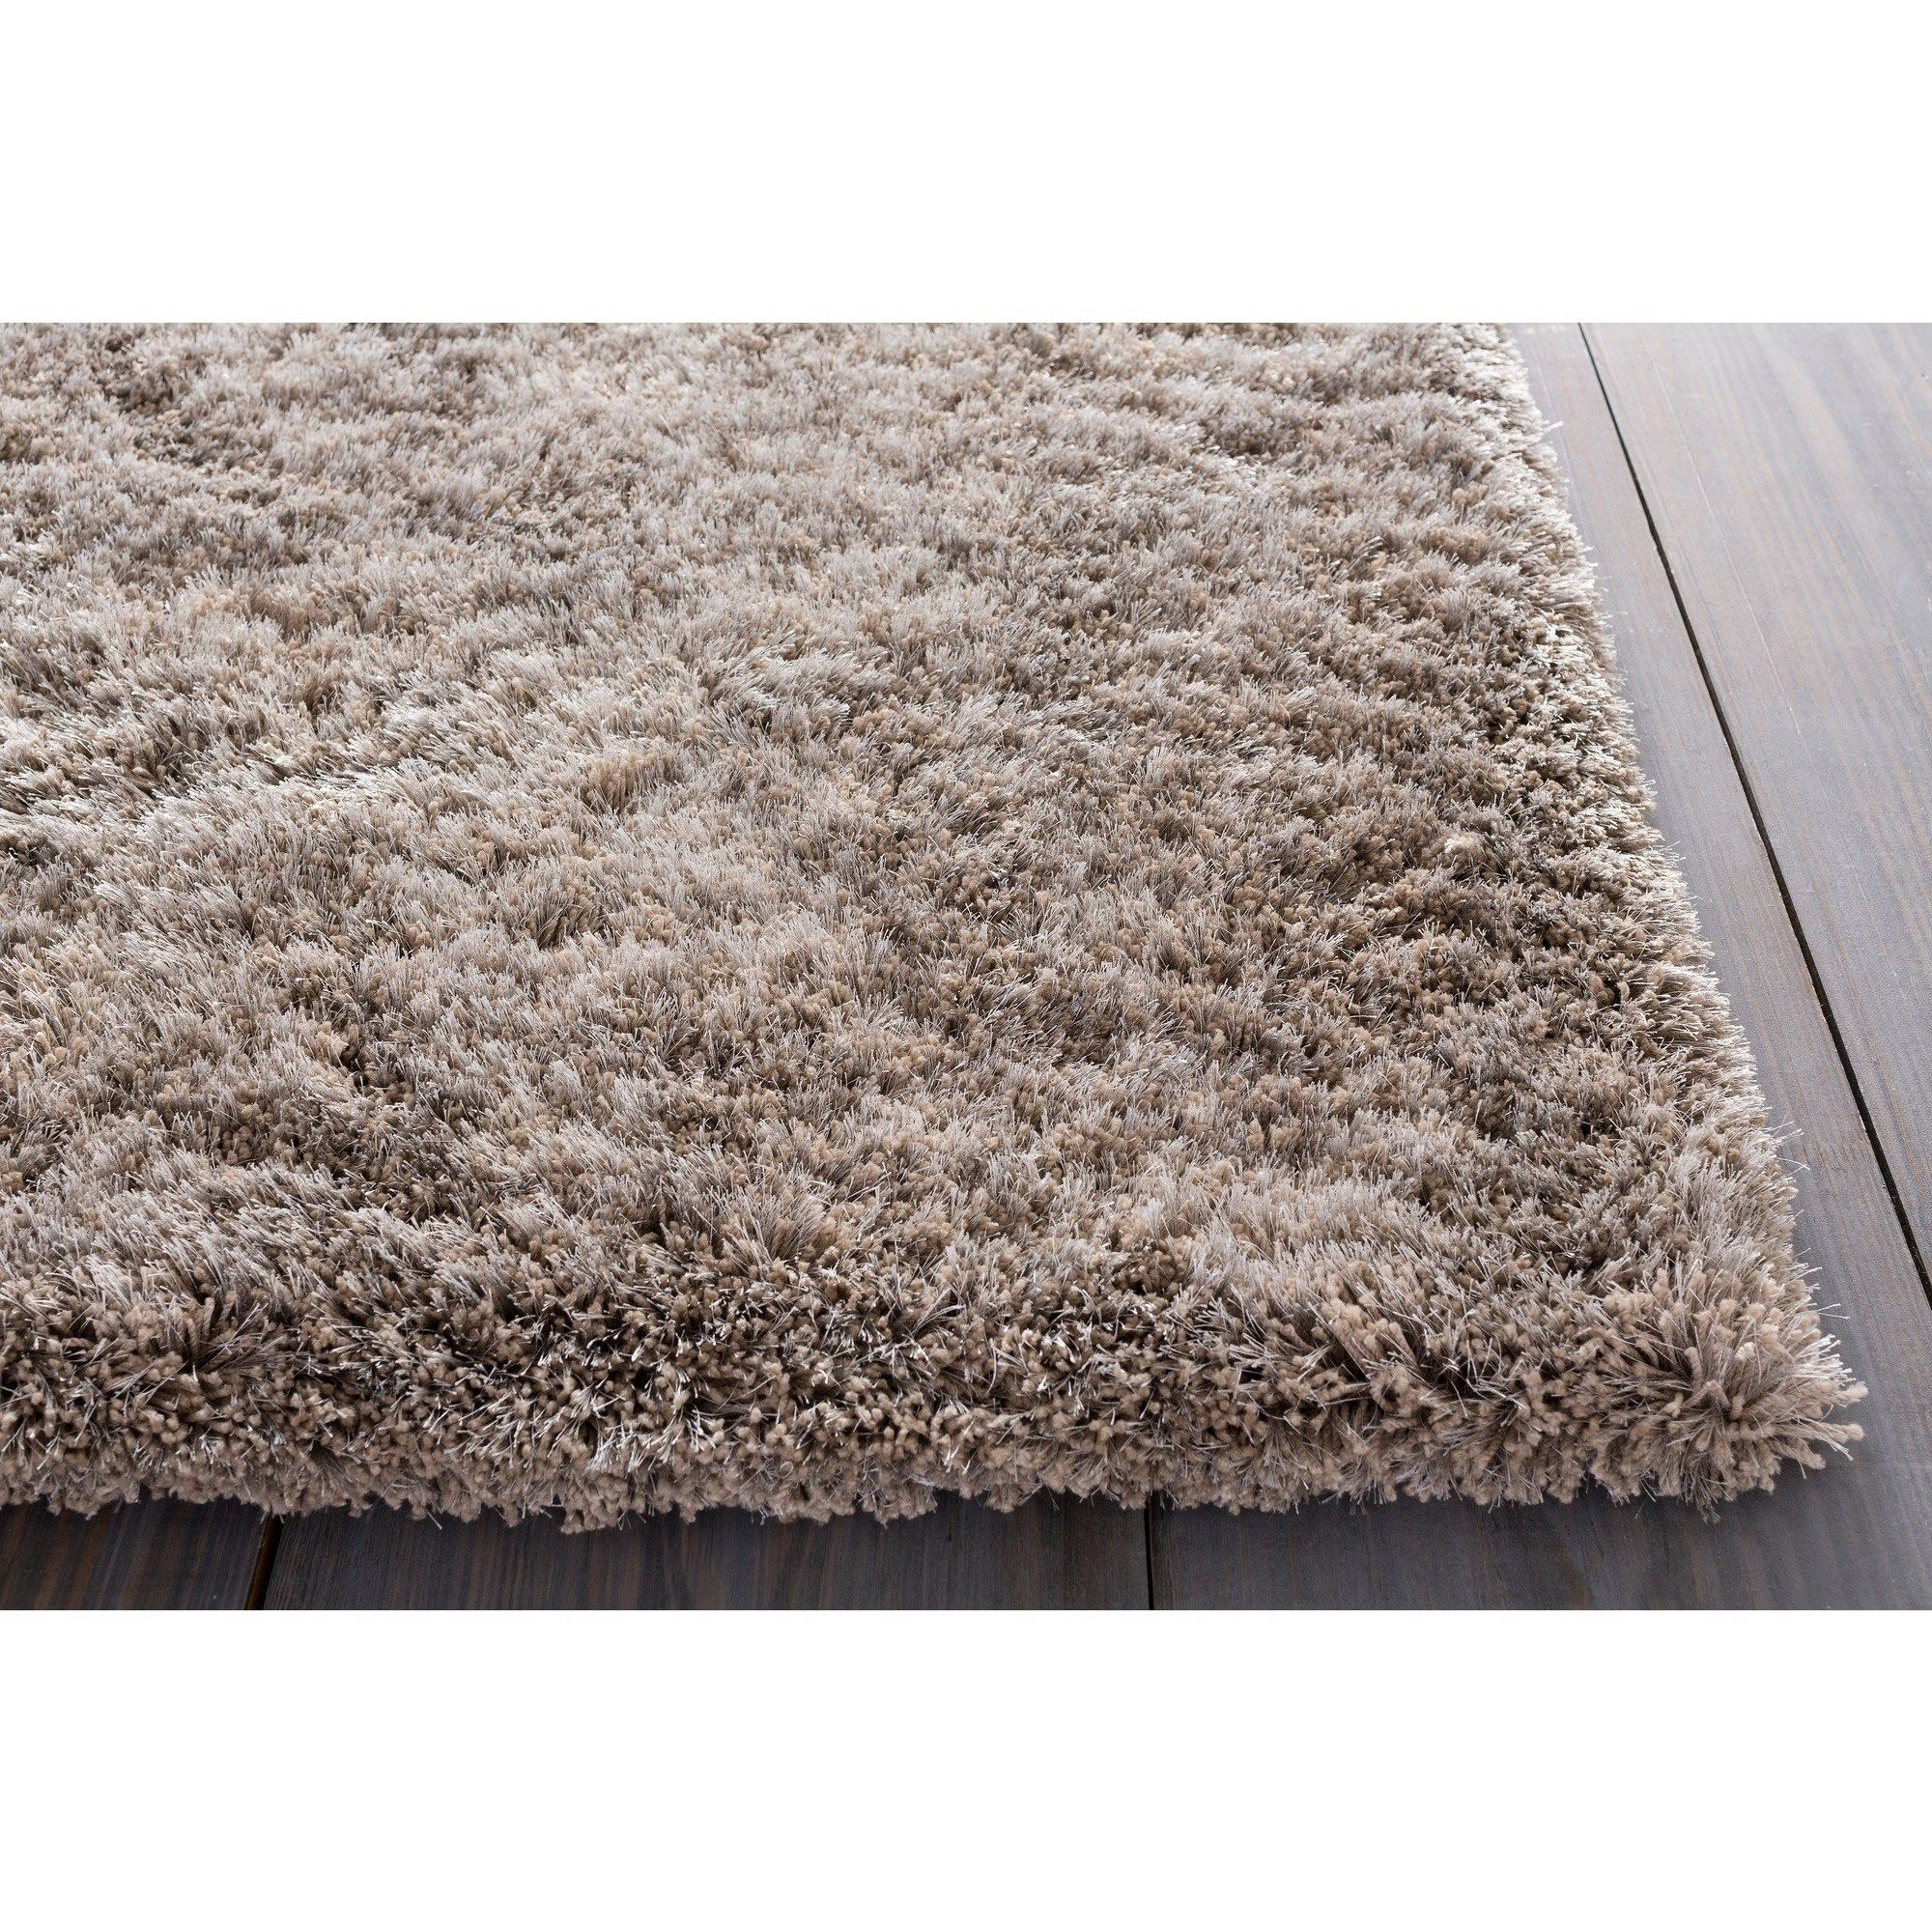 Hand Woven Lovington Brown Super Soft Shag Area Rug 12 X 15